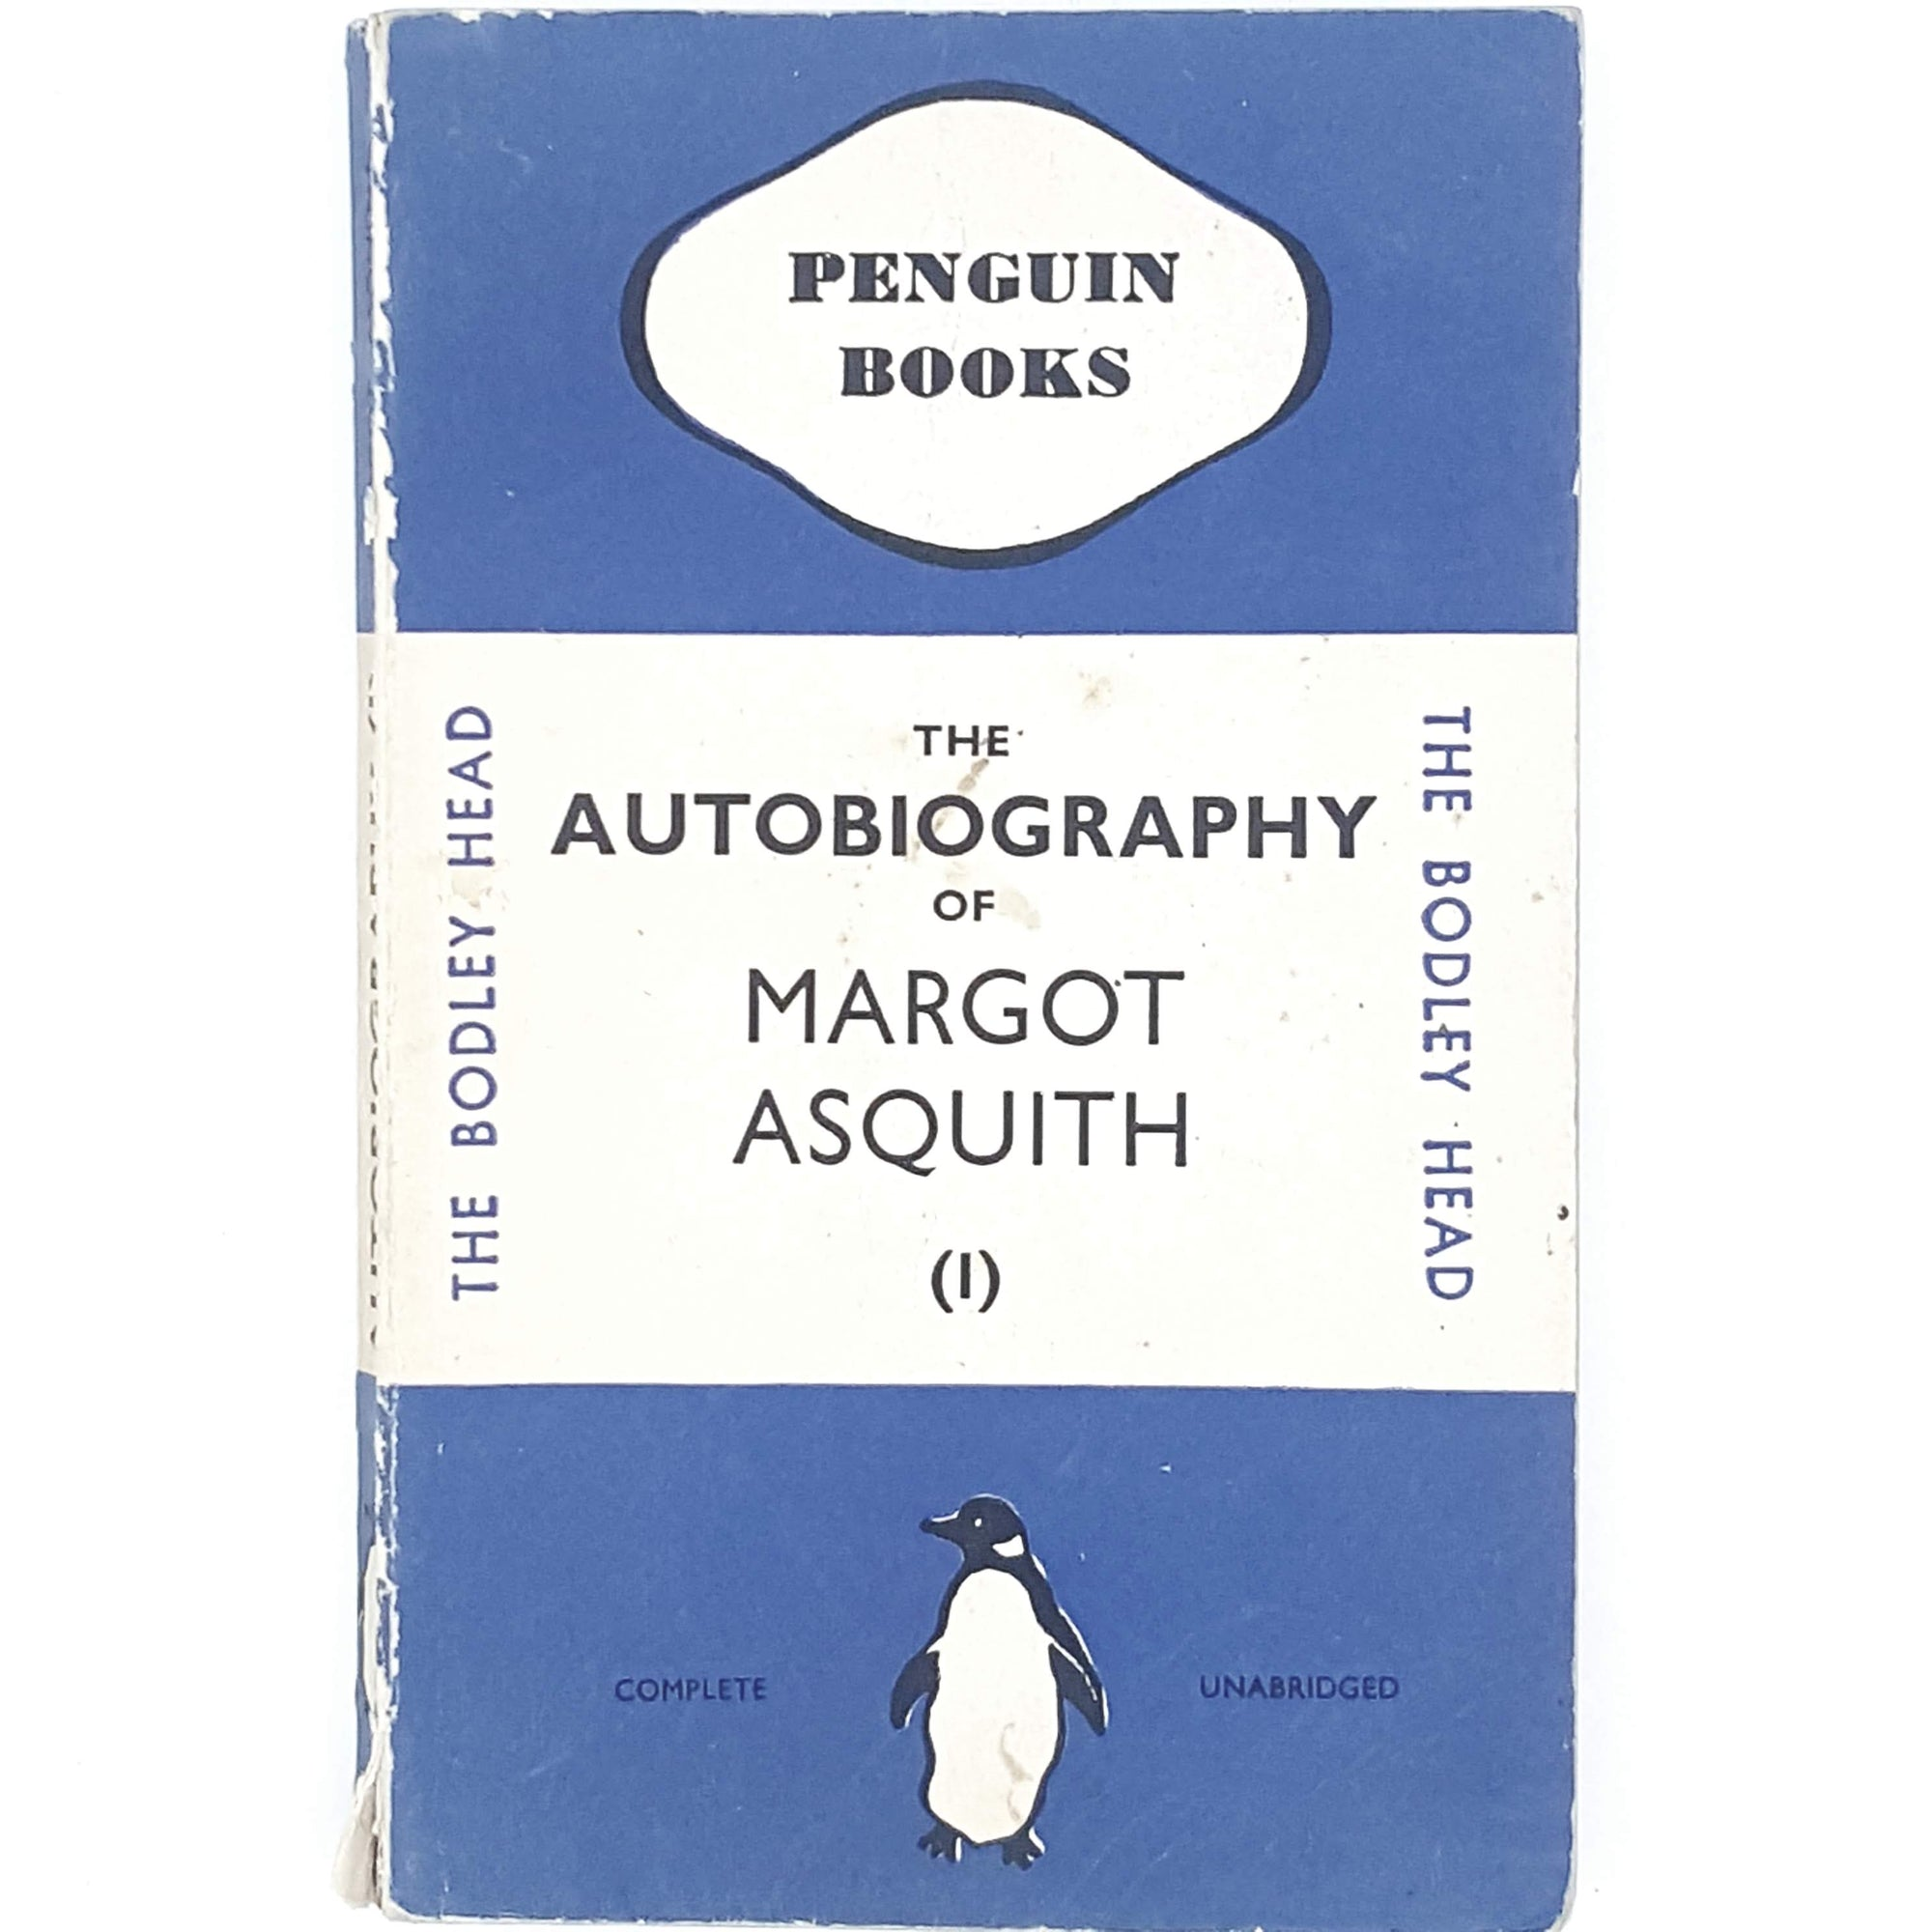 blue-margot-asquith-vintage-penguin-country-library-book